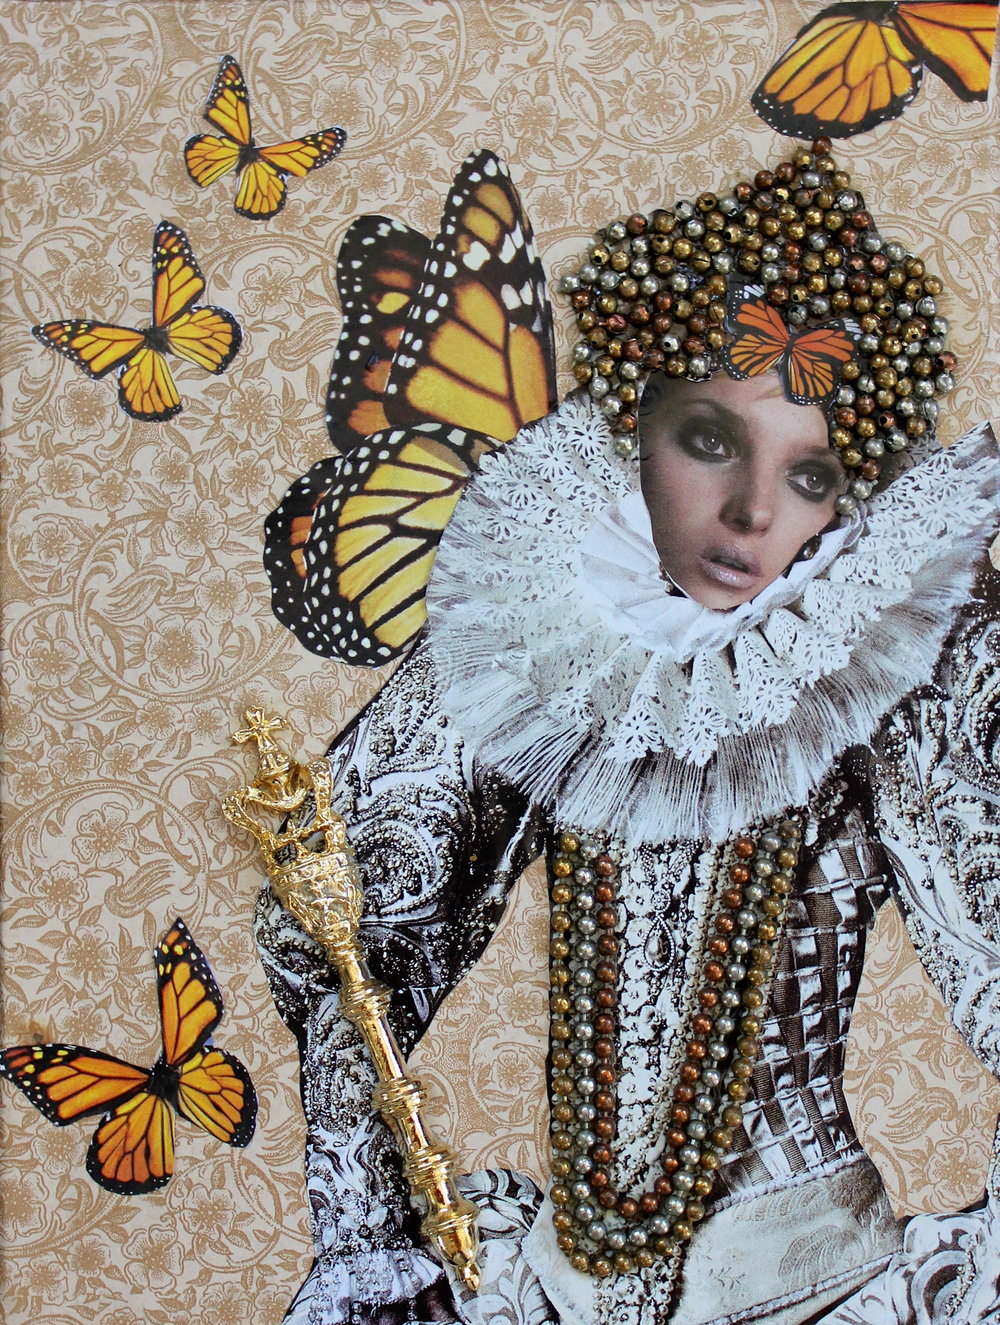 """The Butterfly Queen""  Materials used:  Paper ephemera, pin, key chain"